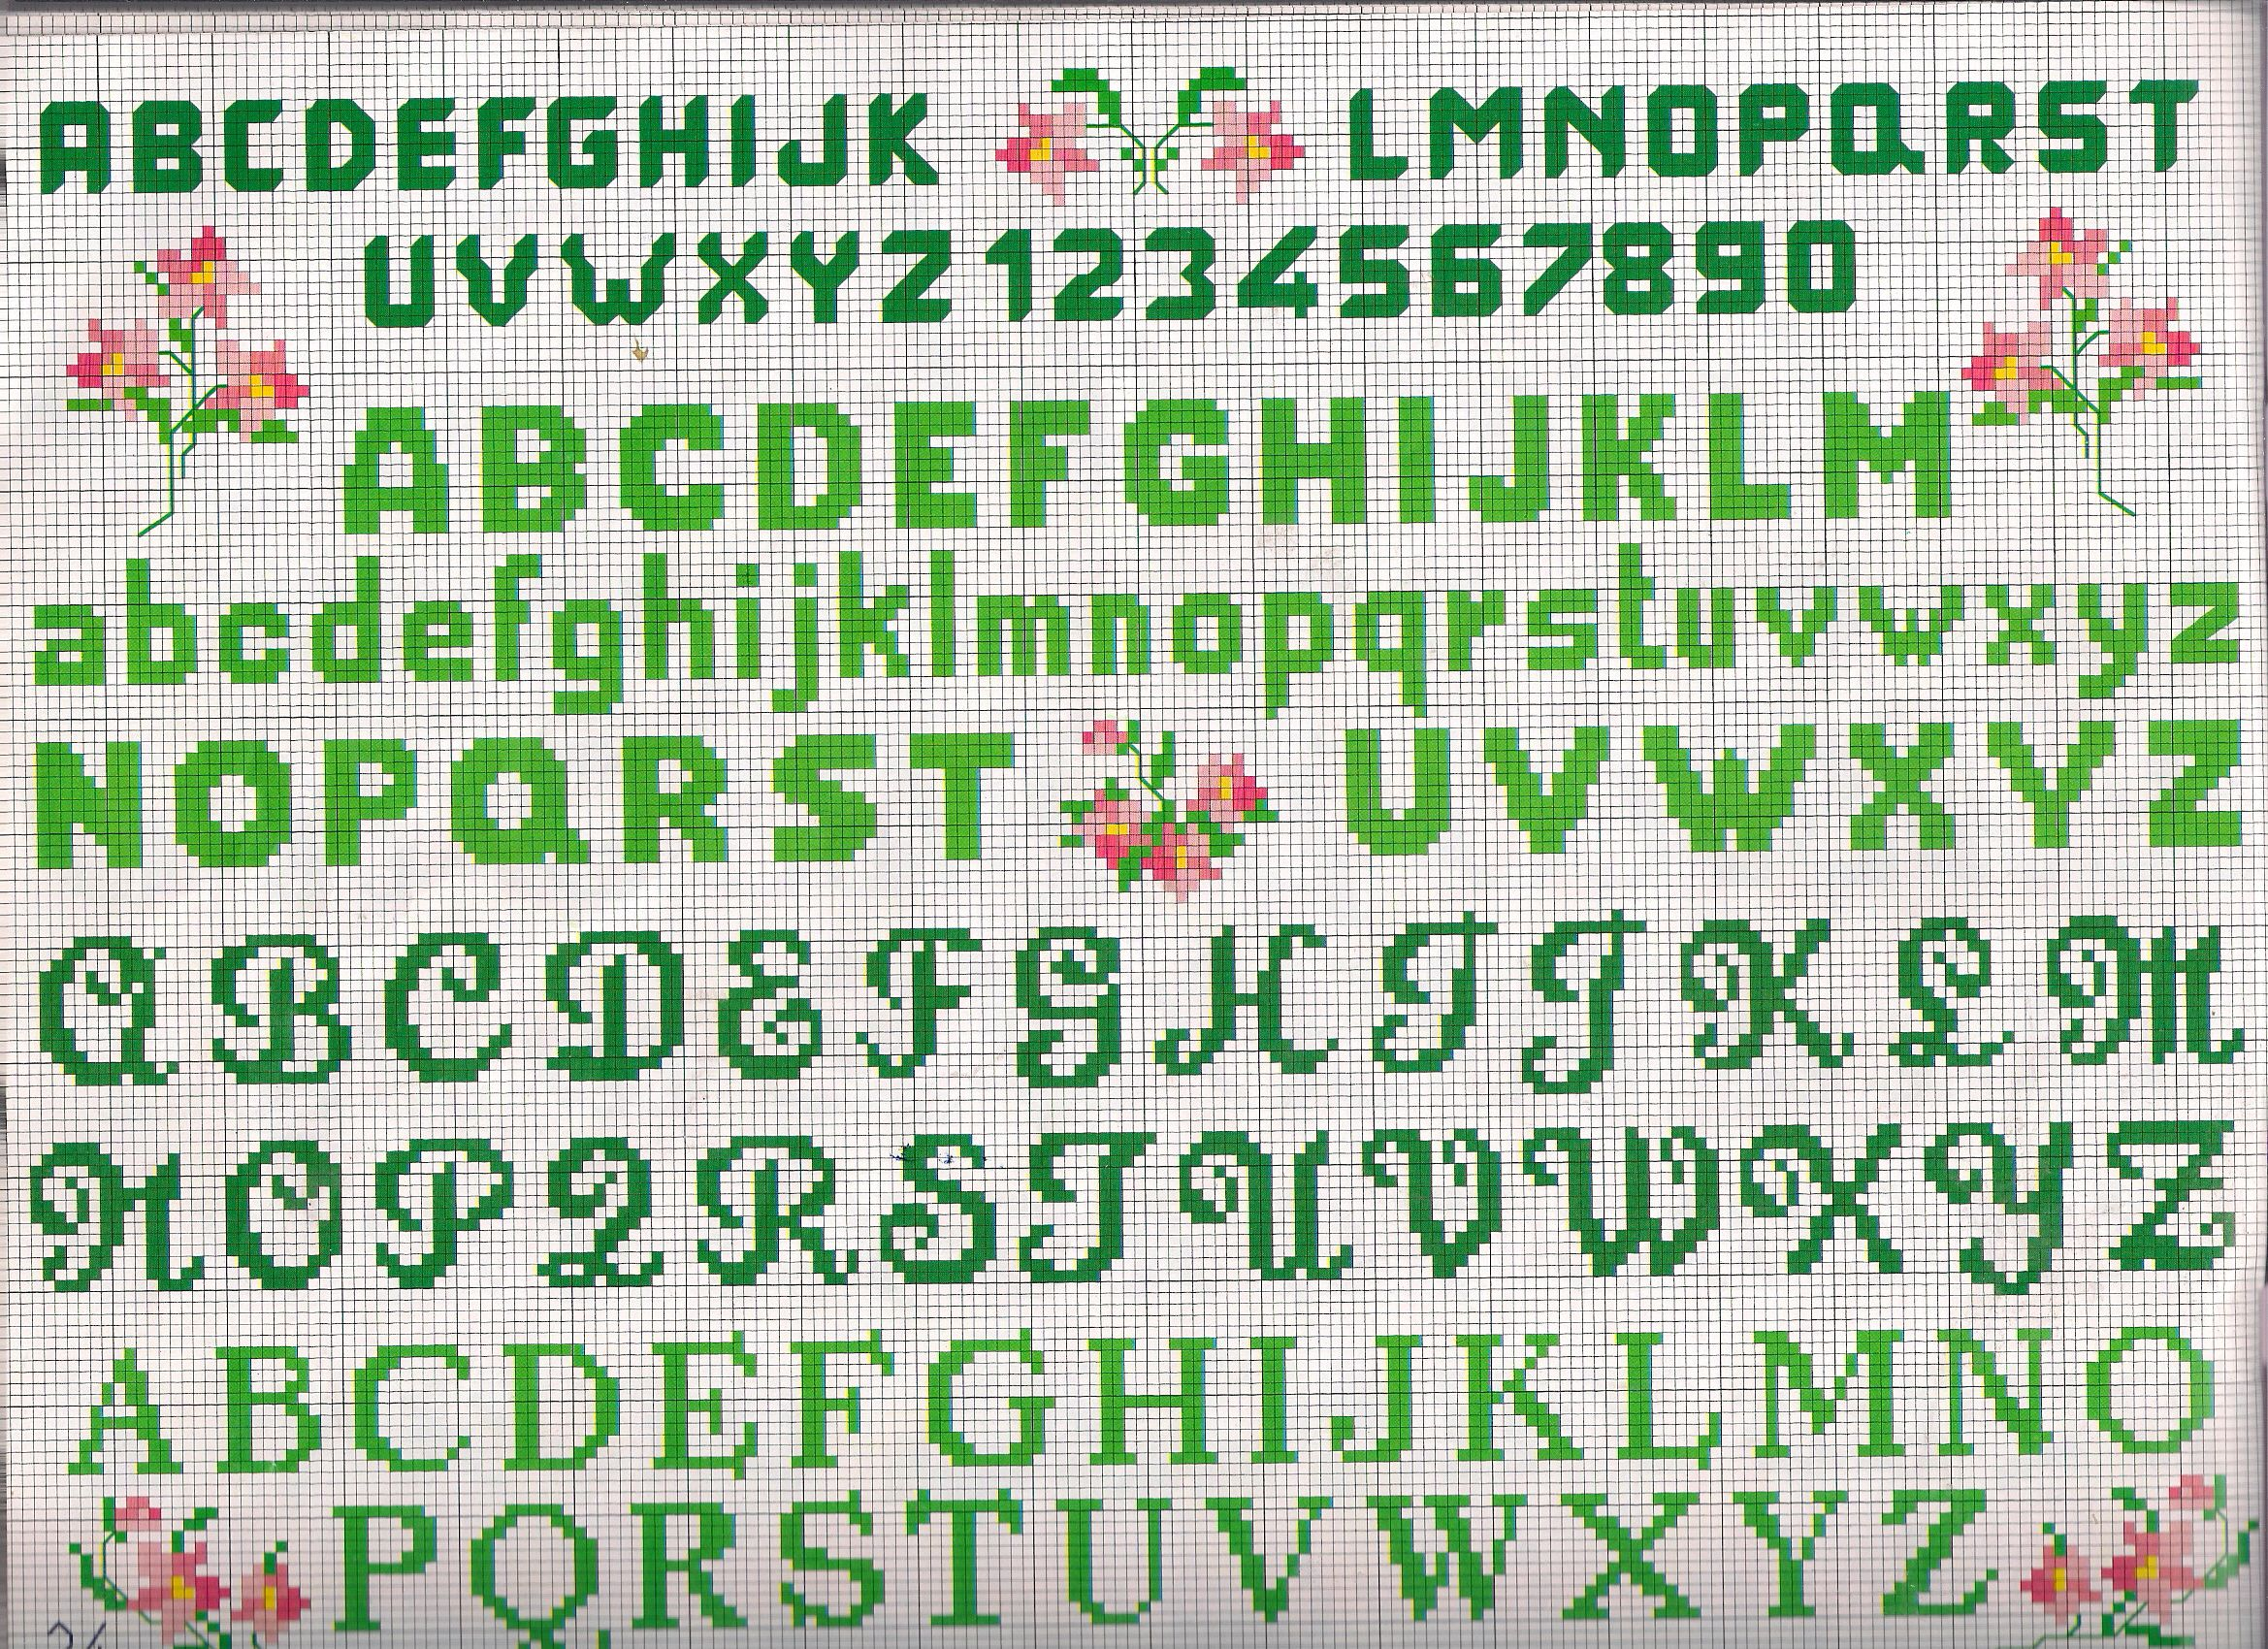 Lettere e numeri piccoli needlepoint cross stitch for Ricamo a punto croce lettere alfabeto